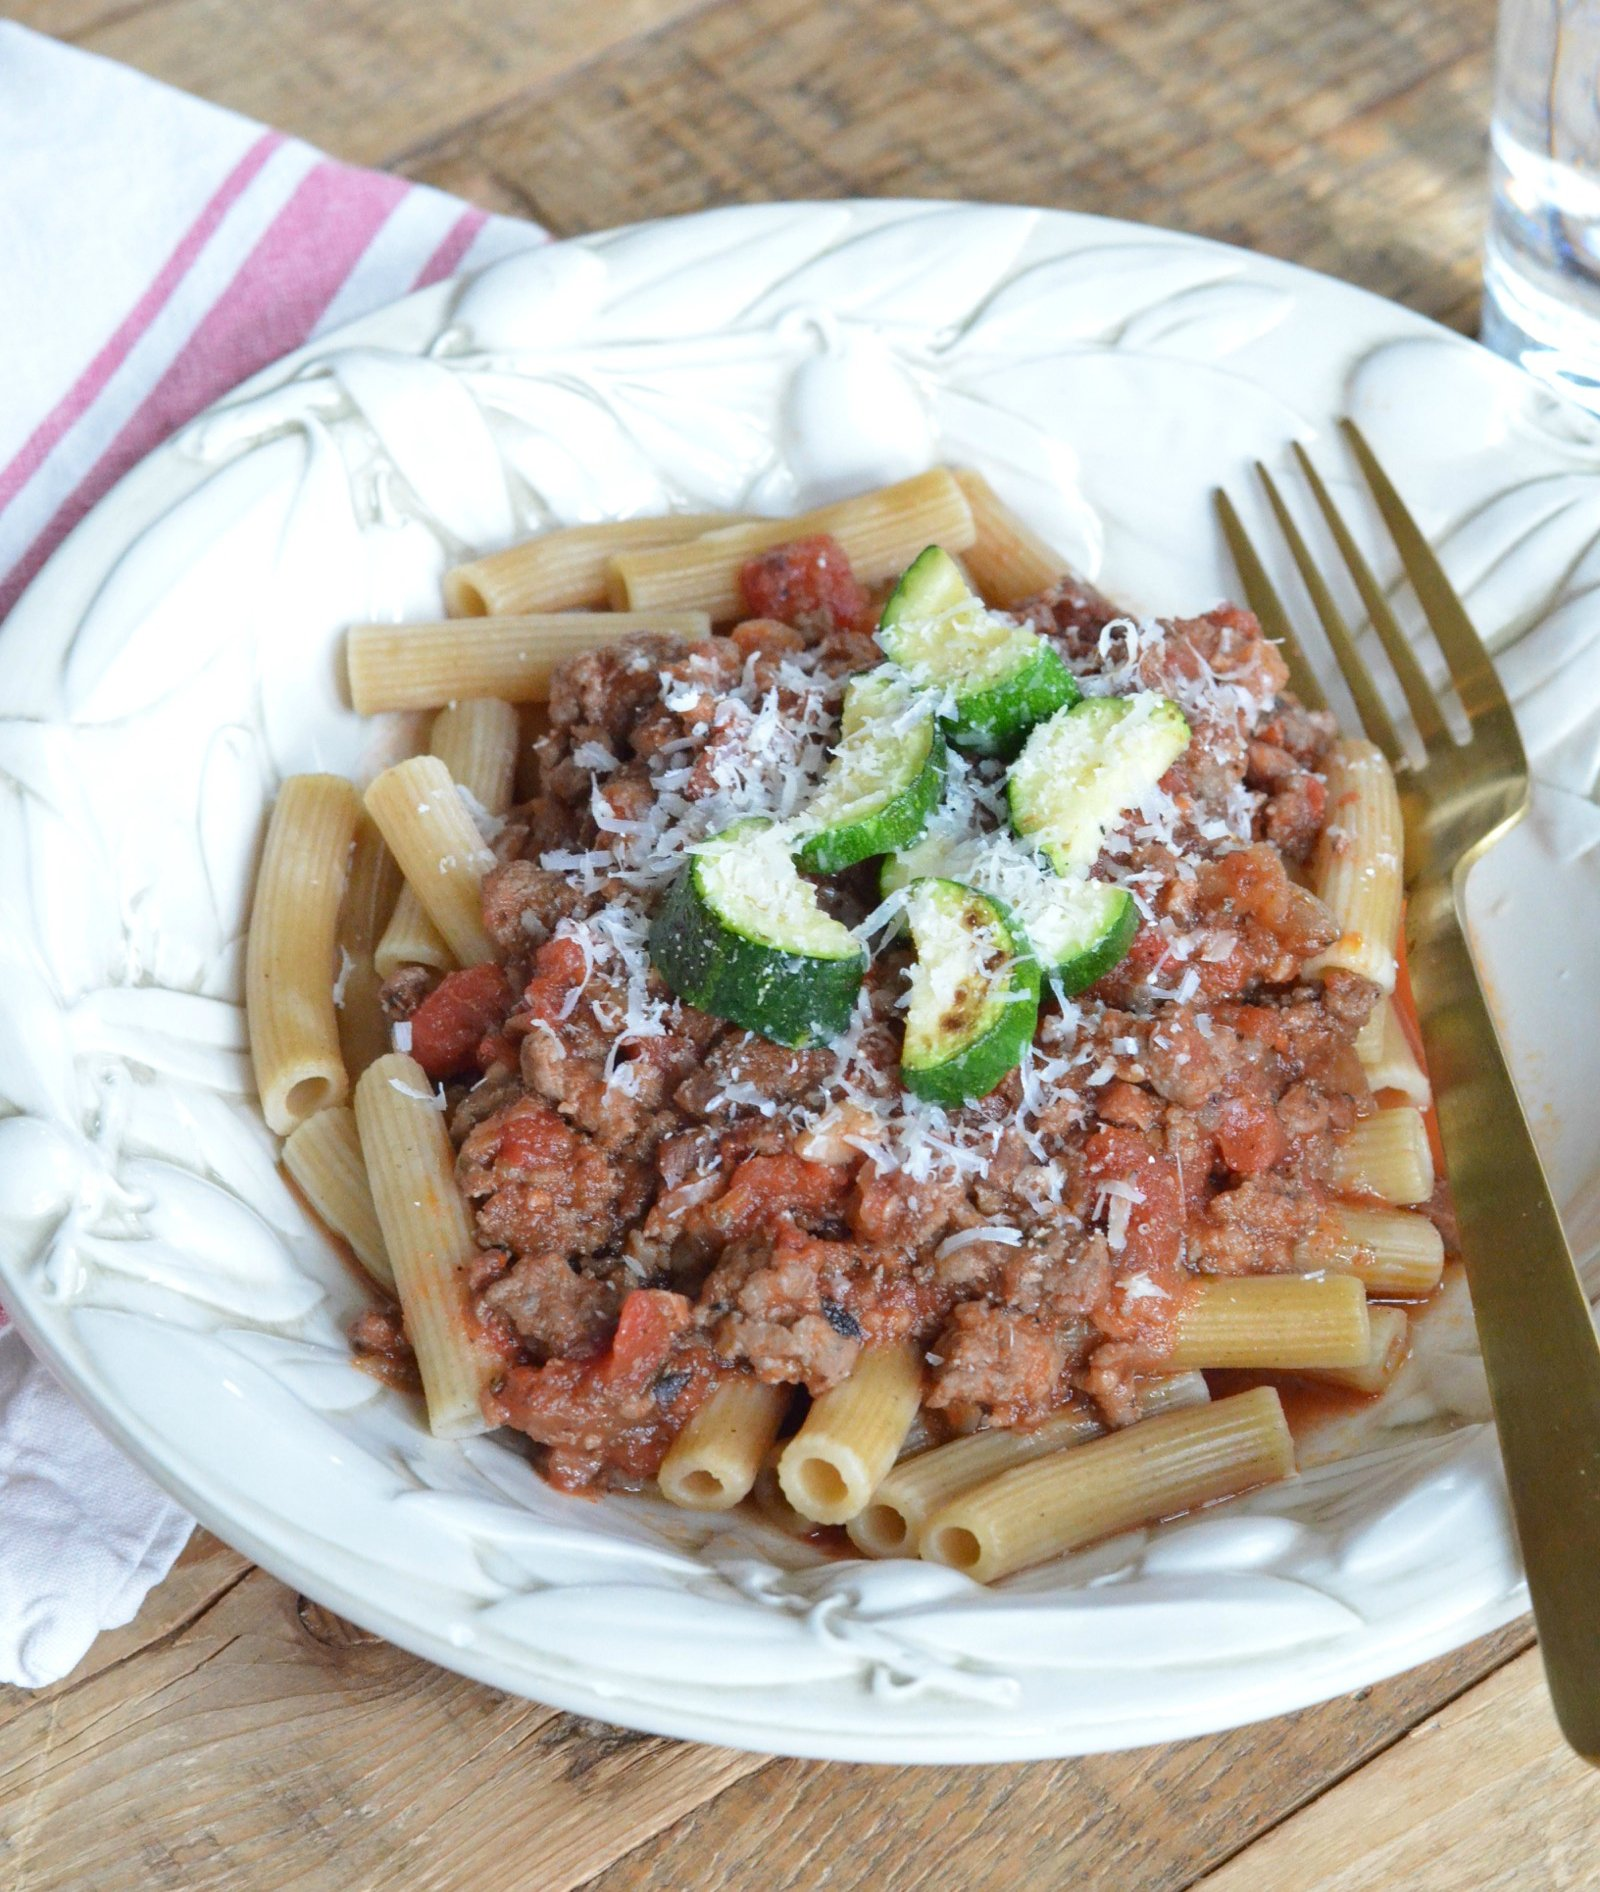 Simple Meaty Spaghetti Recipe: The Best Meaty Spaghetti Sauce » 100 Days Of Real Food